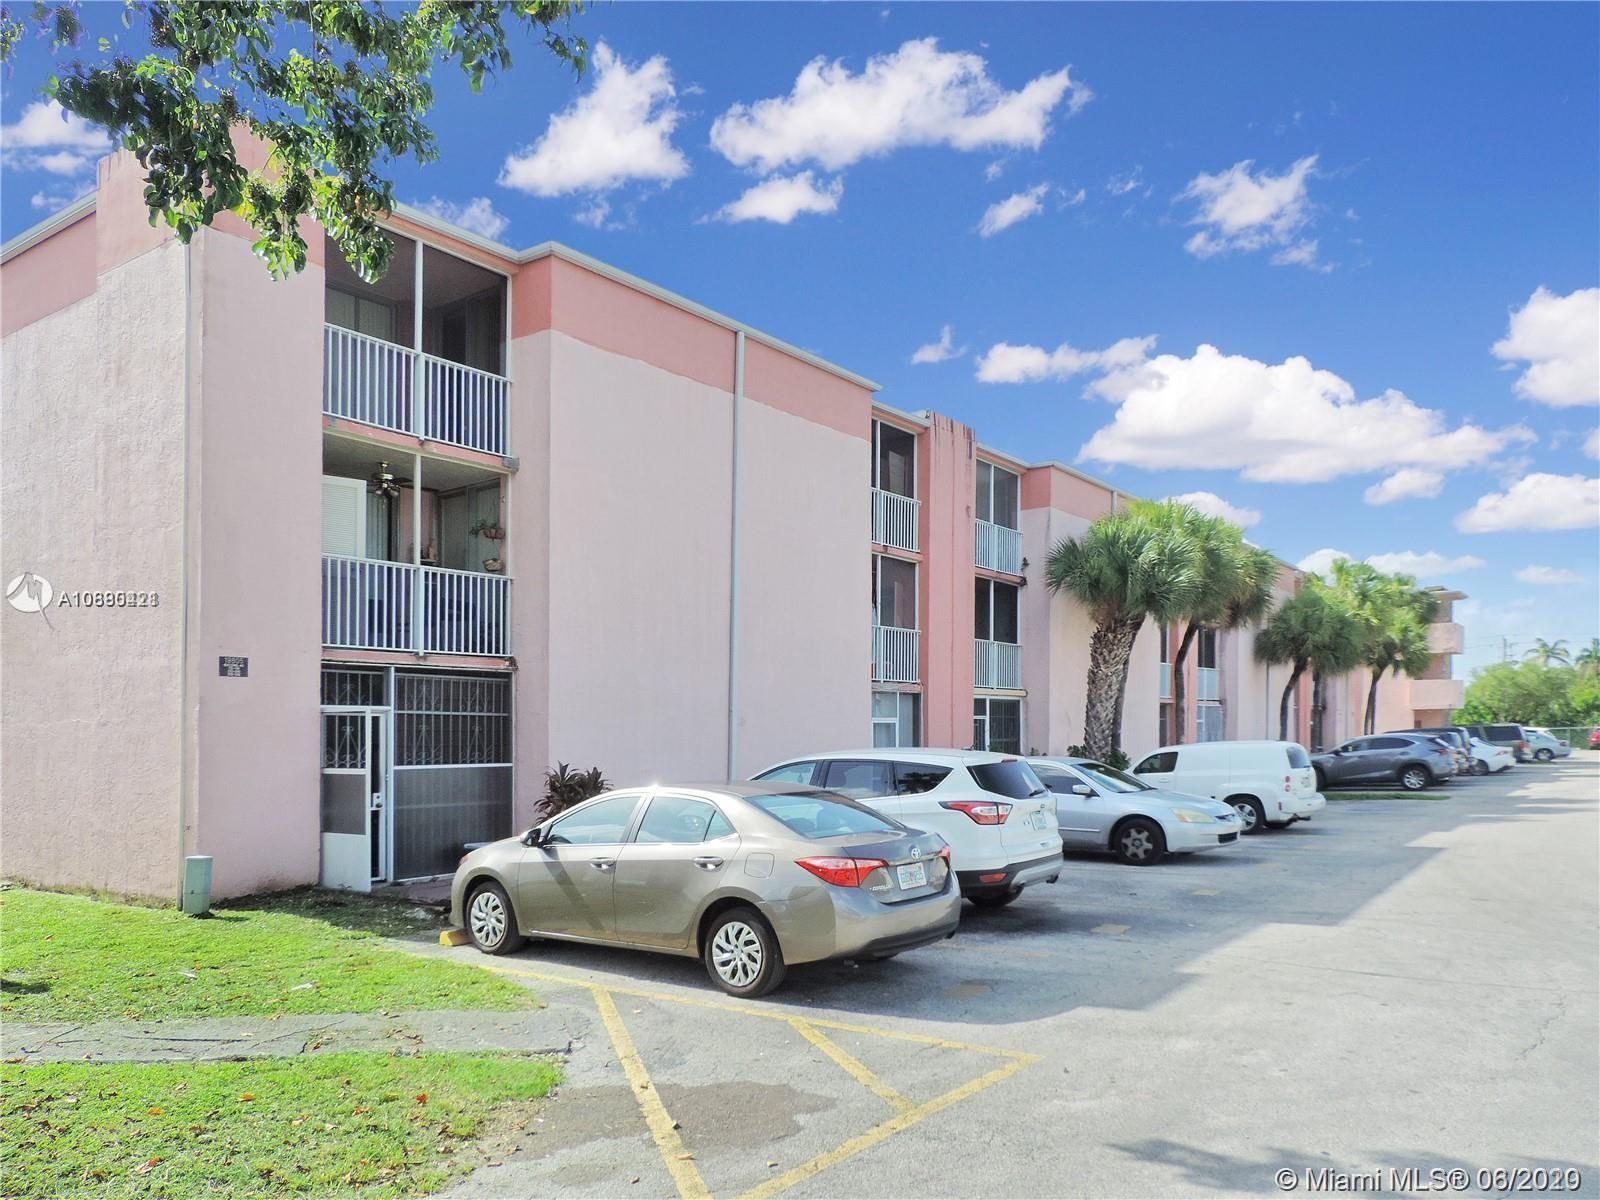 Great Portfolio sale of 13 Units locate close to Southland Mall with easy access to US1 and Florida Turnpike. All unit are 2 Bedroom 2 Baths 800 SQ FT and rented between $1,200.00 to $1,250.00 can be increase rent around 8% return. Some with a 1-year lease others Month to Month. 100% occupied for good tenants and high demand rental area. All unit are in average to good condition.